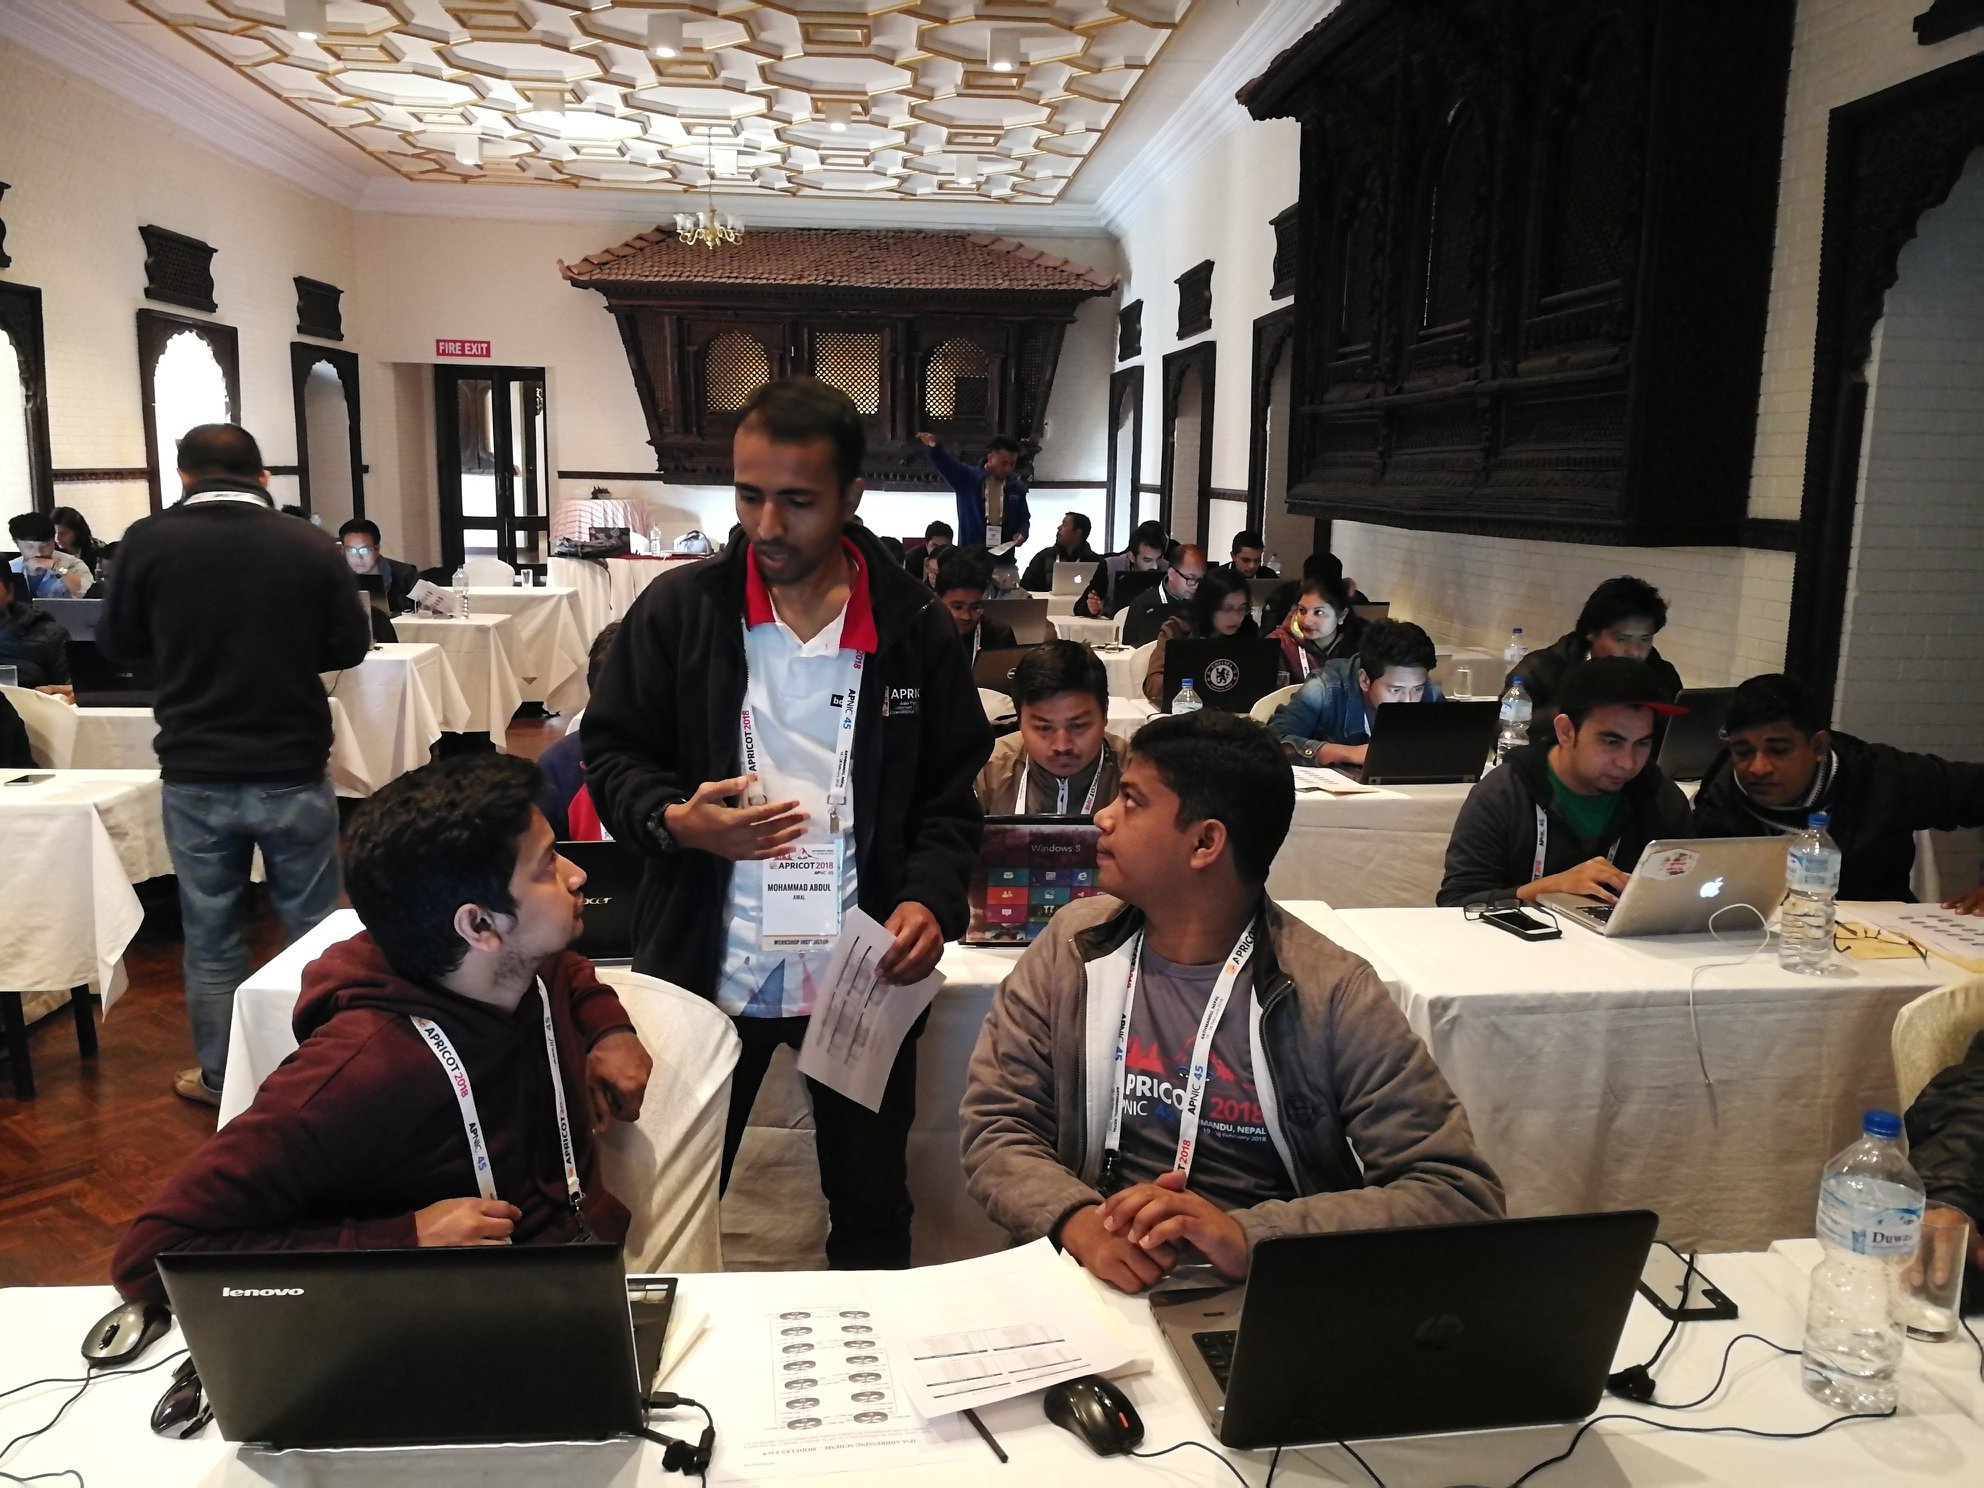 Md. Abdul Awal at APRICOT